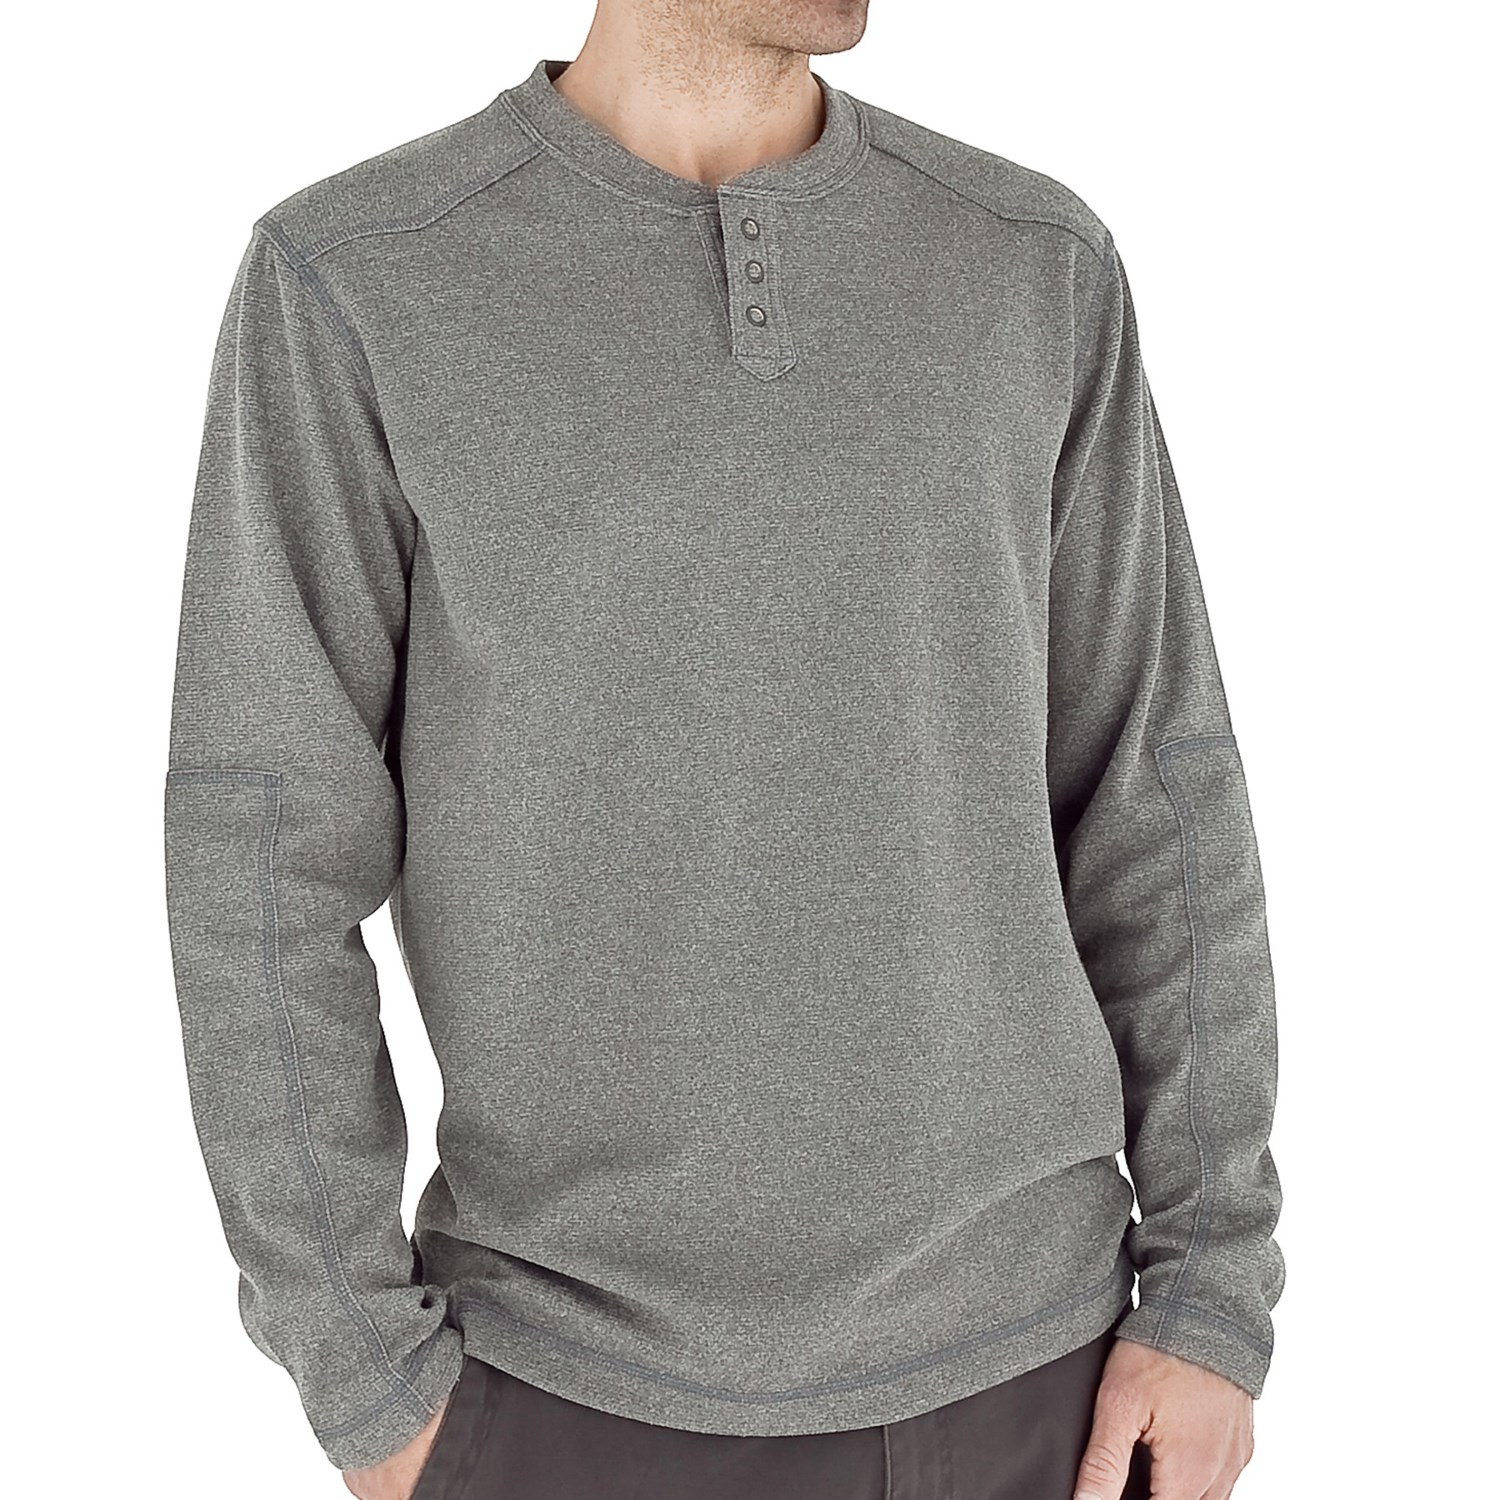 Mens Thermal Henley Shirt ($ - $): 30 of items - Shop Mens Thermal Henley Shirt from ALL your favorite stores & find HUGE SAVINGS up to 80% off Mens Thermal Henley Shirt, including GREAT DEALS like Aeropostale Mens Thermal Henley Shirt ($).